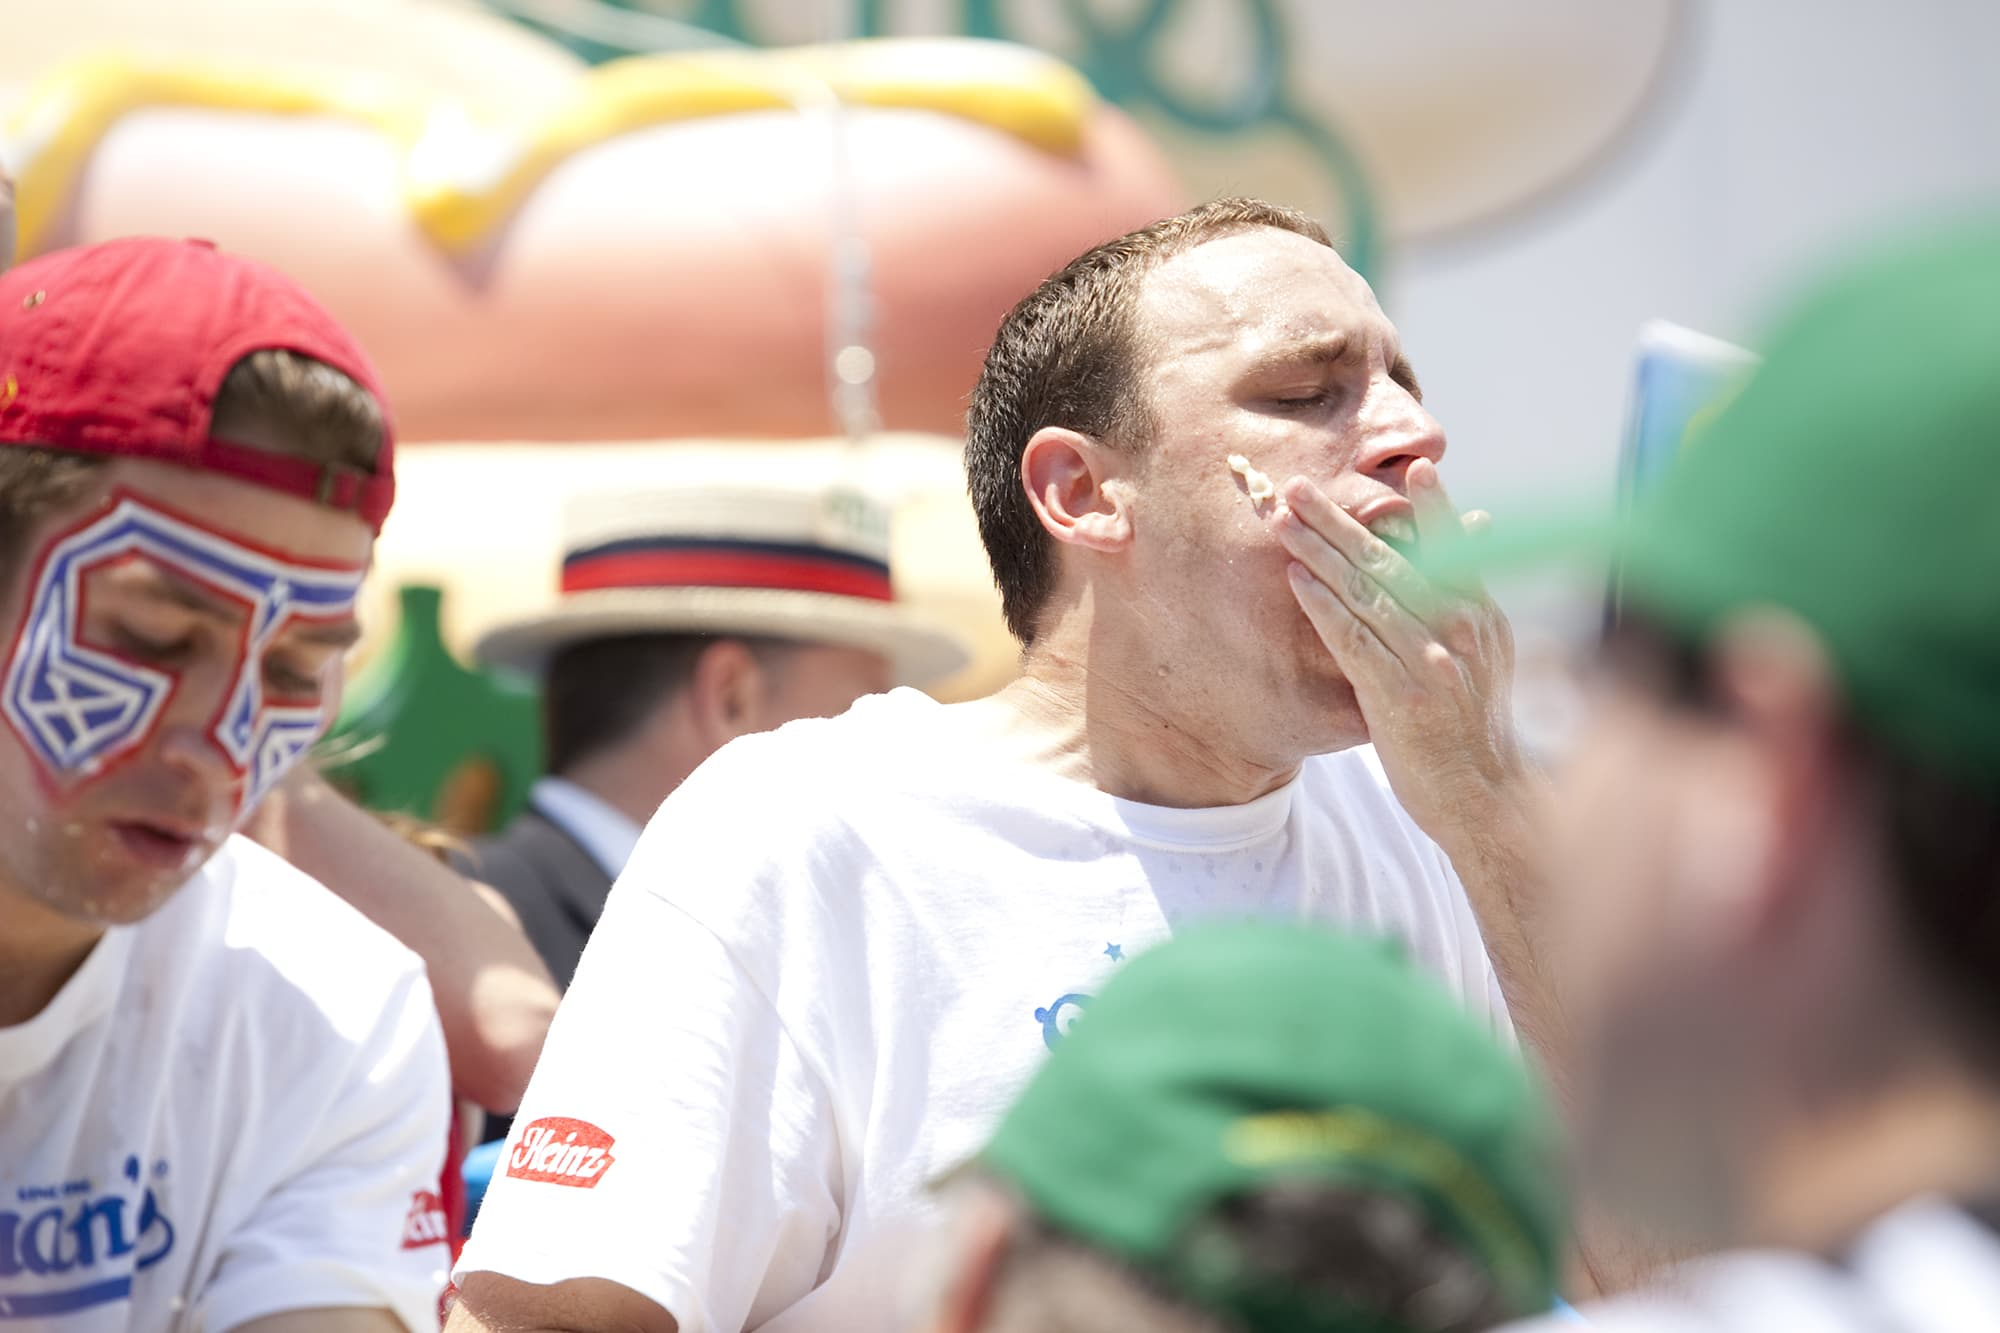 Fourth of July hot dog eating contest at Coney Island